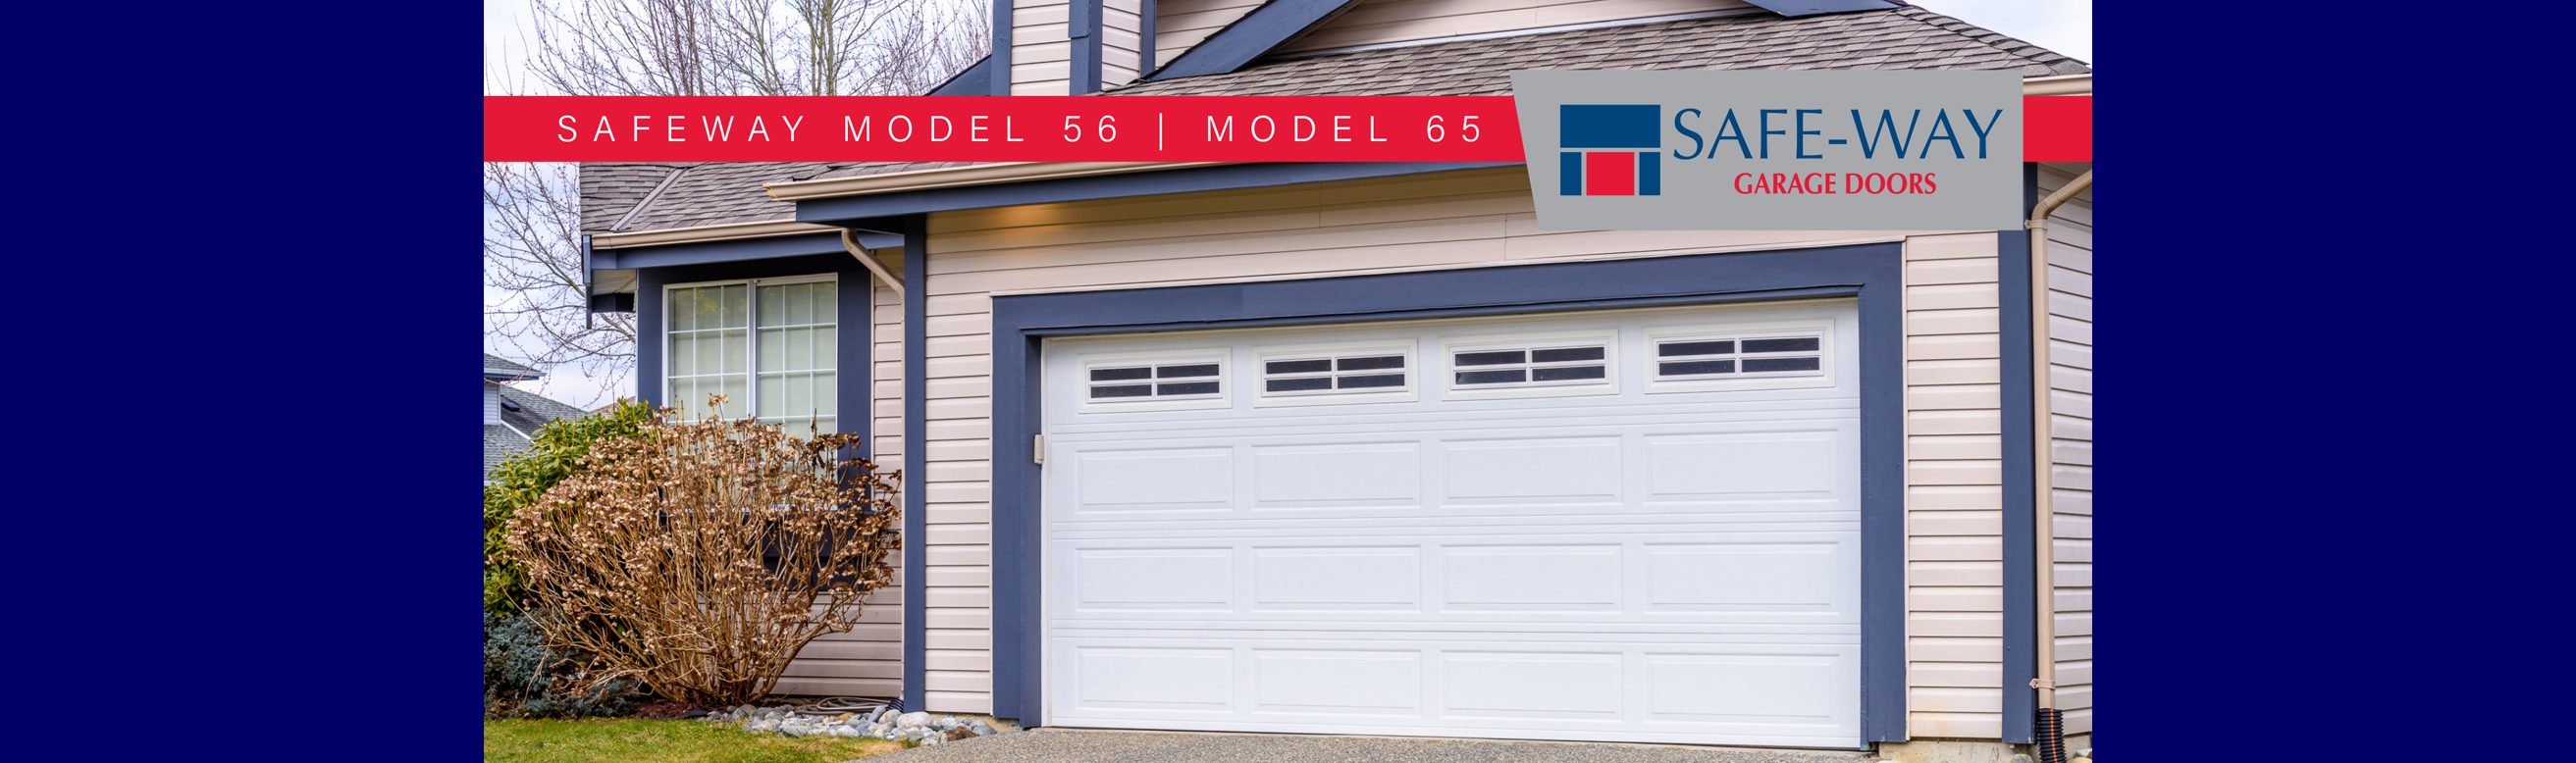 Safe Way Garage Doors Cover